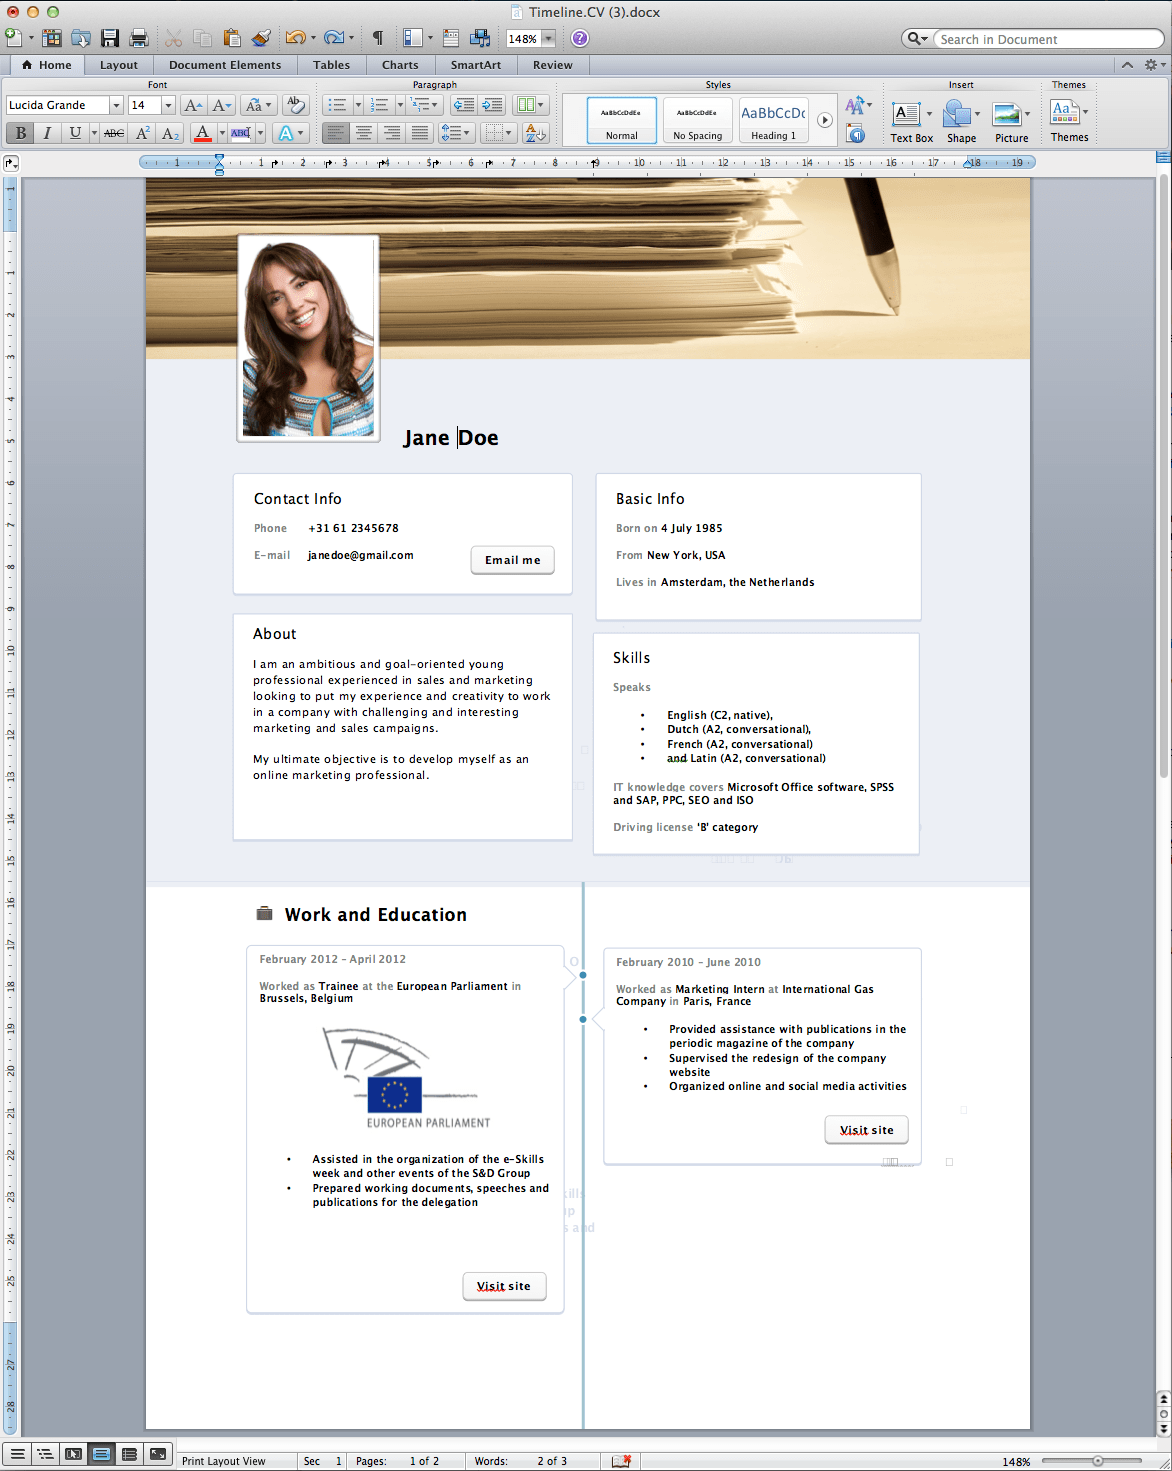 resume templates word xp resume builder resume templates word xp resumes and cover letters office resume cv template word resume format